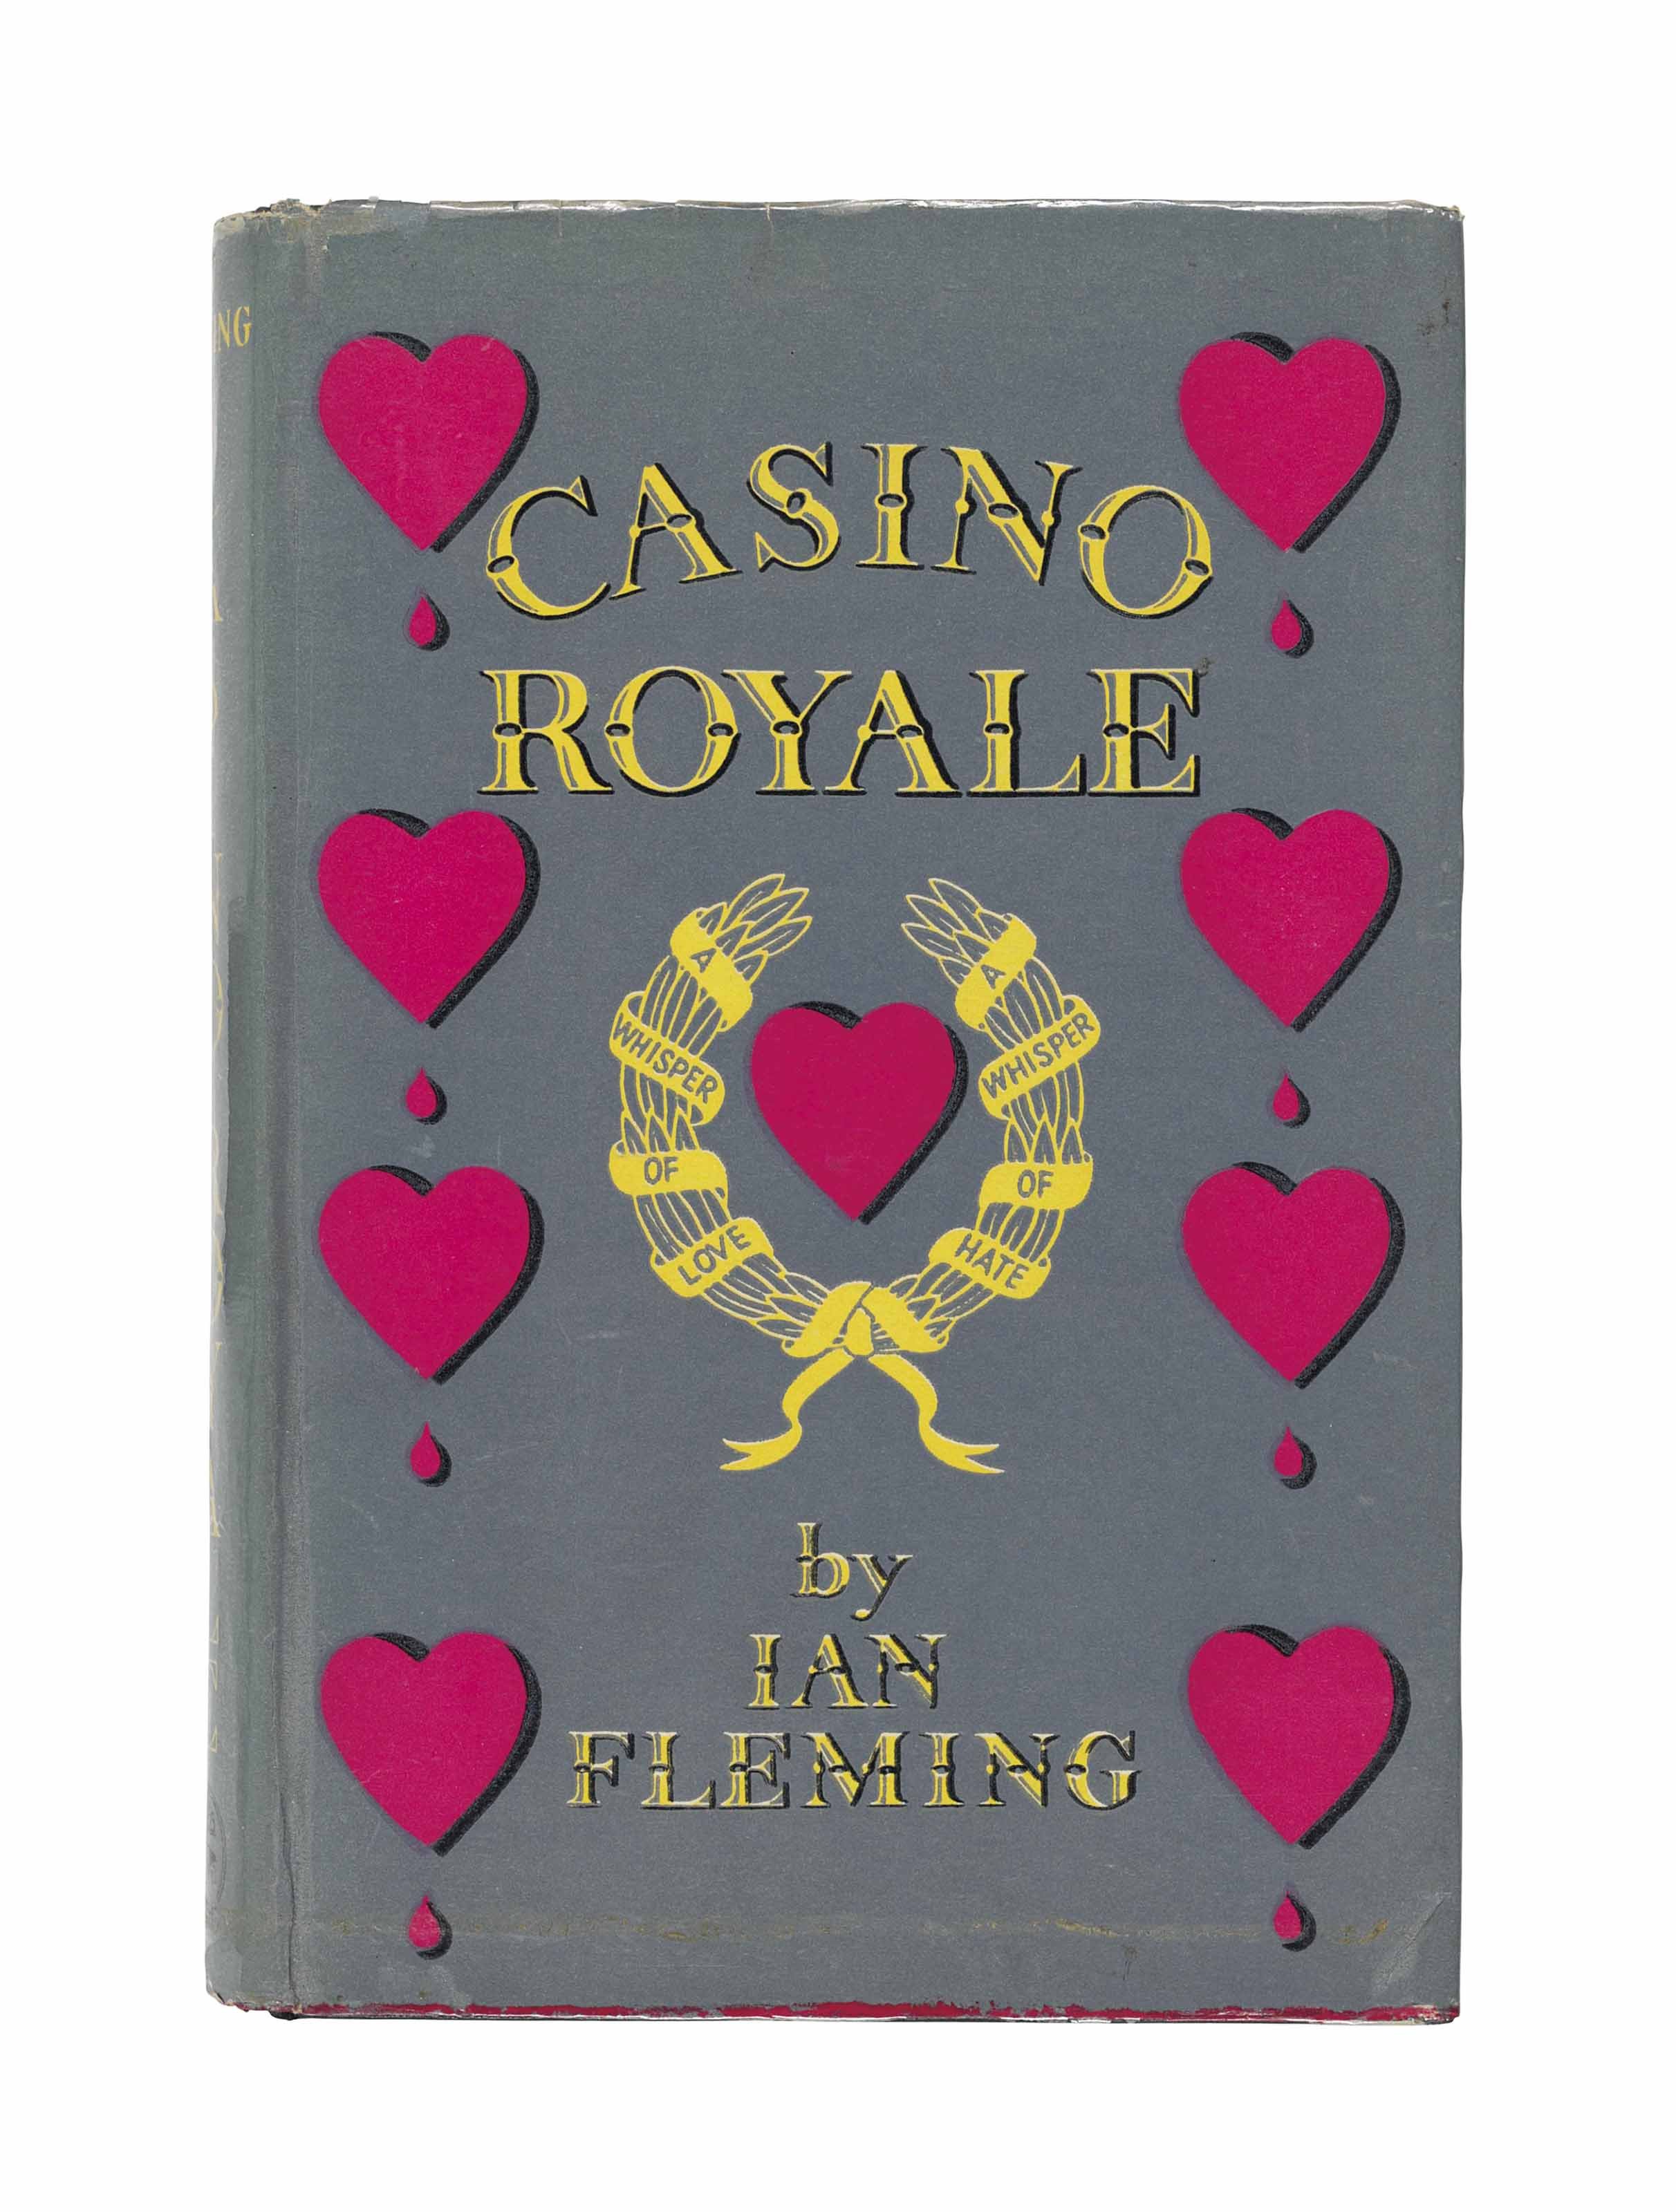 FLEMING, Ian (1908-1964). Casino Royale. London: Jonathan Cape, 1953. 8° (190 x 124mm). (Marginal staining to front free endpaper and half-title with evidence of library shelfmark, a few leaves very lightly creased, occasional marginal light marking and finger-soiling.) Original black decorated cloth, red heart to upper board and lettered in red to spine, original pictorial dust-jacket priced 10s 6d and with blank rear flap but for price and title to corner (covers with tape marks and resultant abrasion from tape removal to lower cover, dust-jacket sometime laminated, light fraying to top edge, evidence of tape removal from bottom edge with some surface loss to lower cover, light staining to flaps).